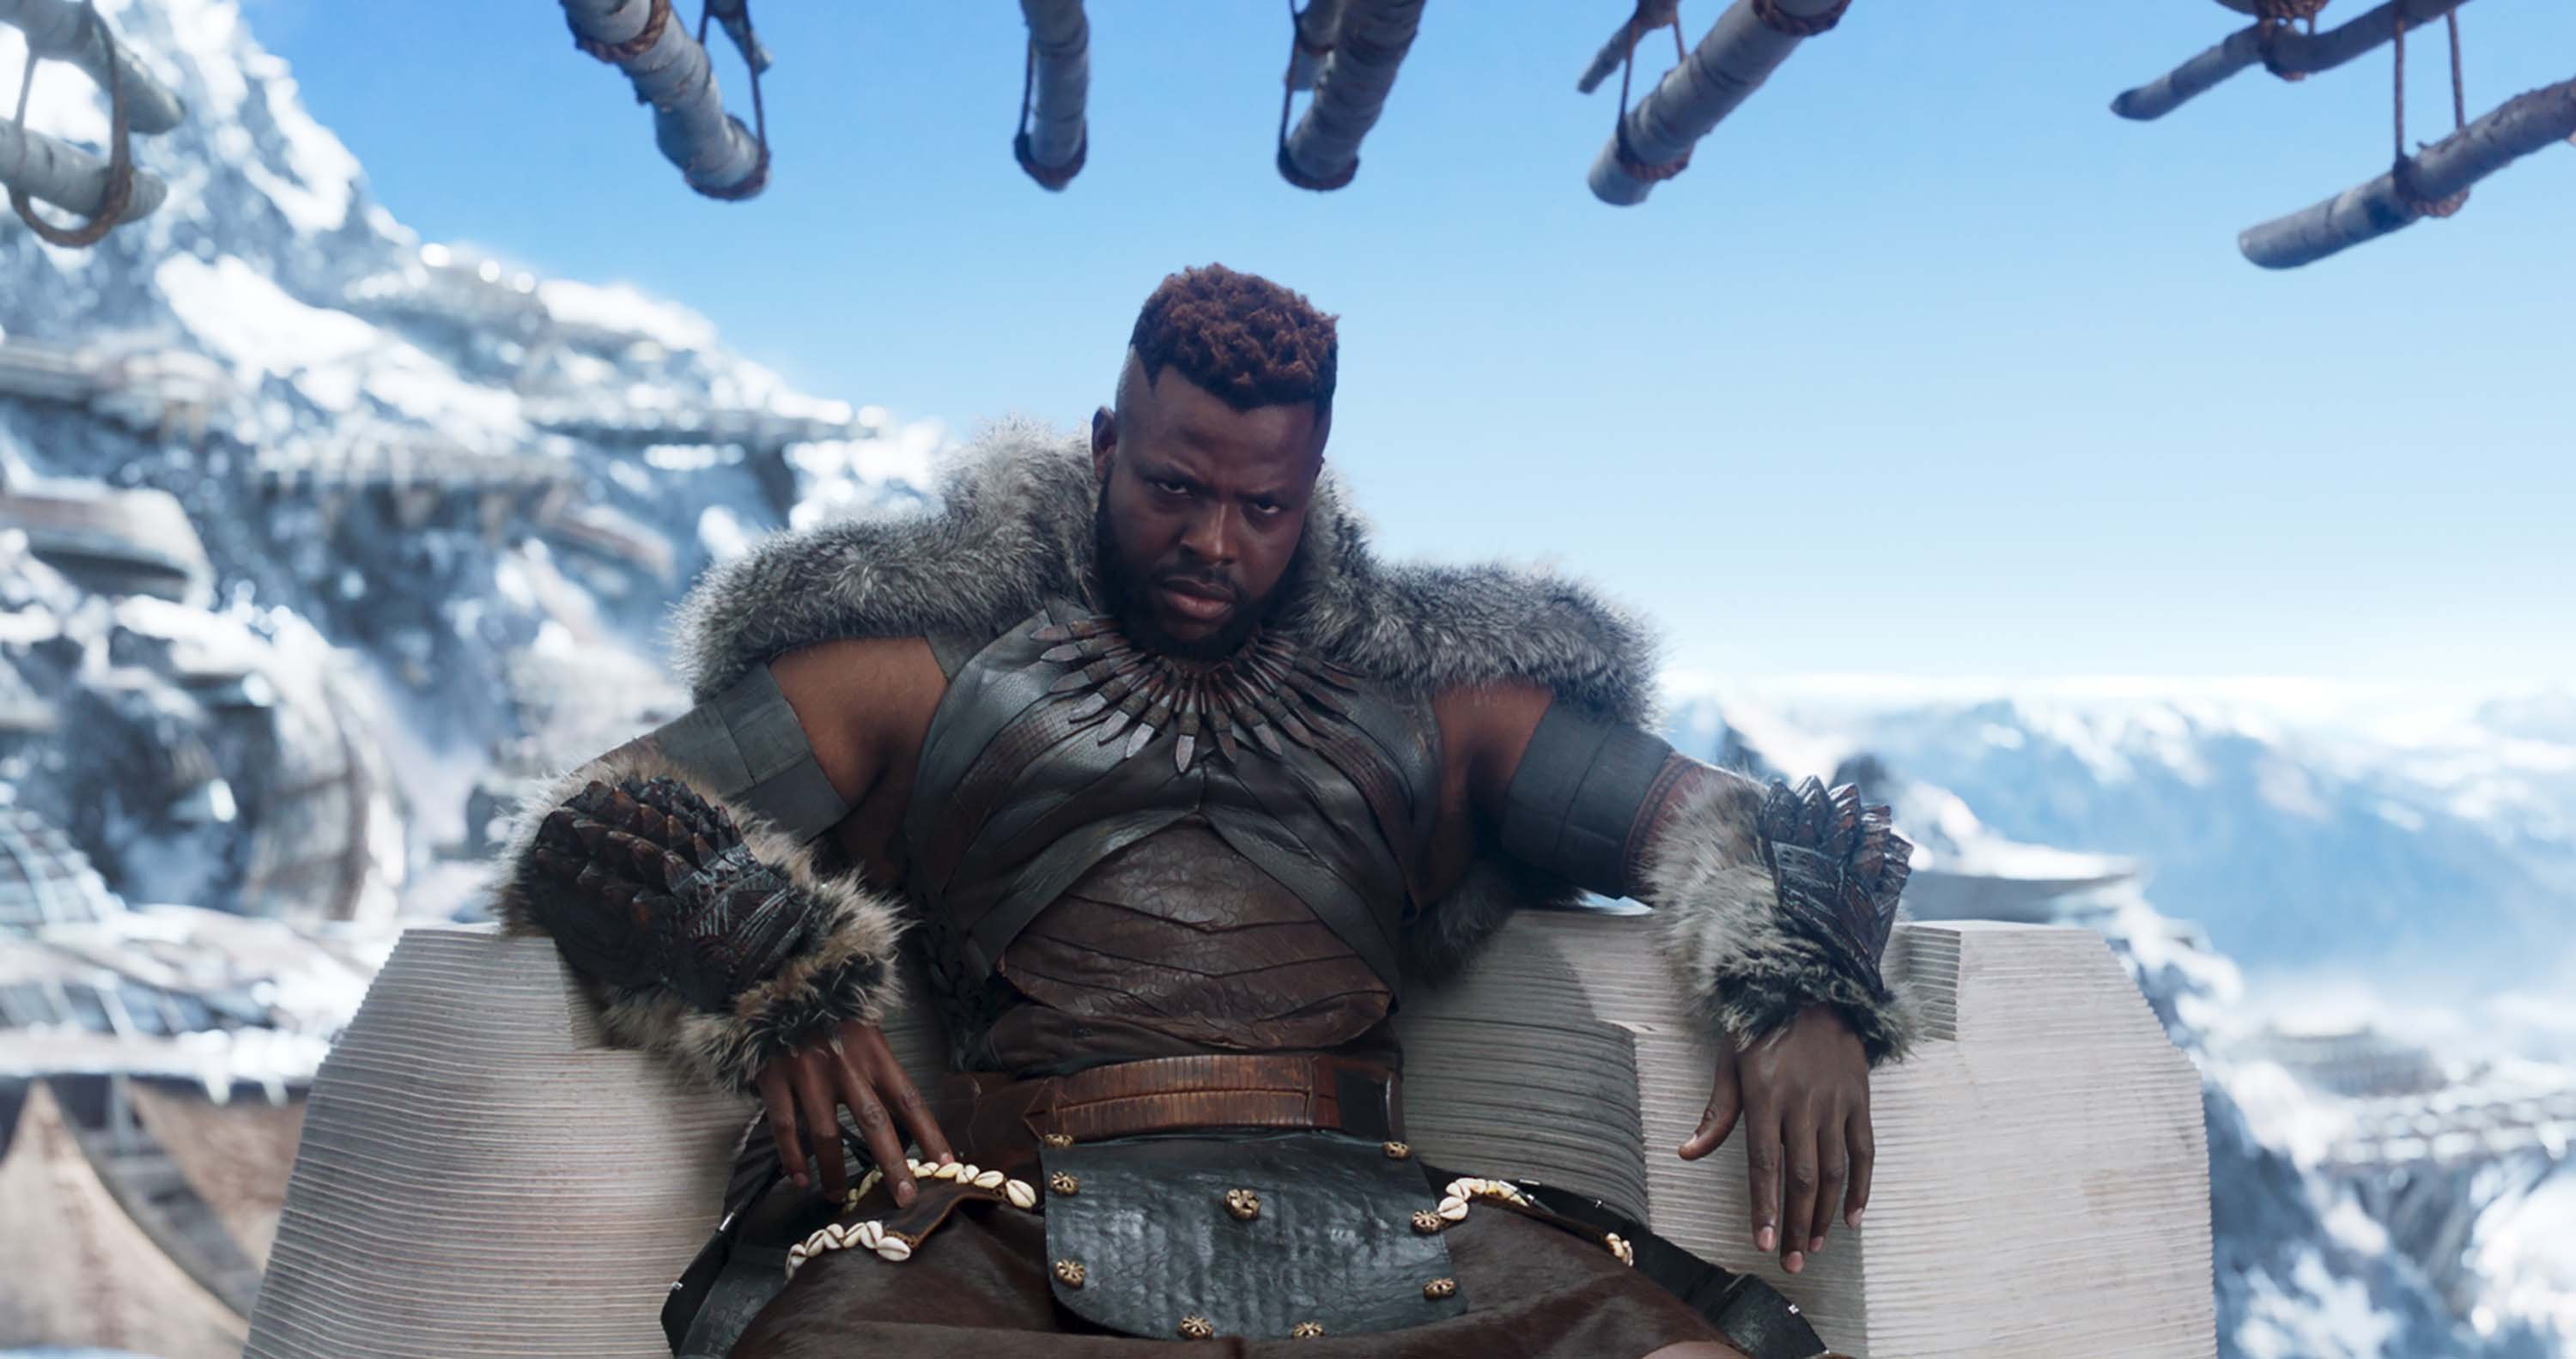 'Black Panther' is the most tweeted about movie ever